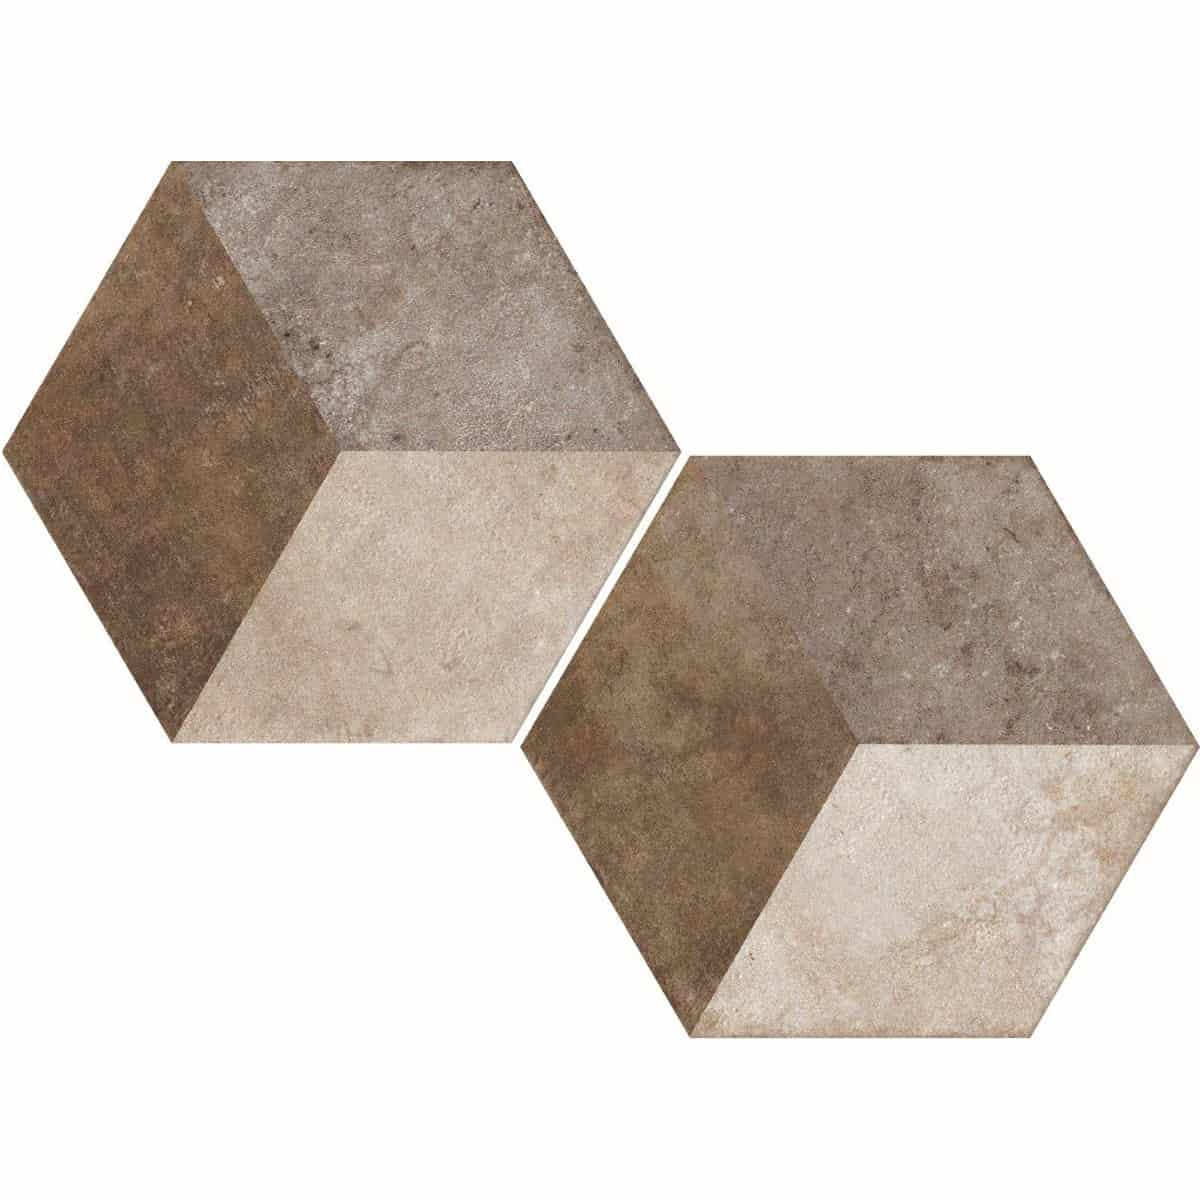 large format pattern hexagon tile 345x400mm Deco Heritage texture 2 by Decobella tiles - South Africa Big format porcelain tiles from Italy and with up to 100 shades, the geometric pattern creates a modern yet timeless focal point.Enjoy the quility of porcelain with great anti-slip properties but the look of clay or cement.